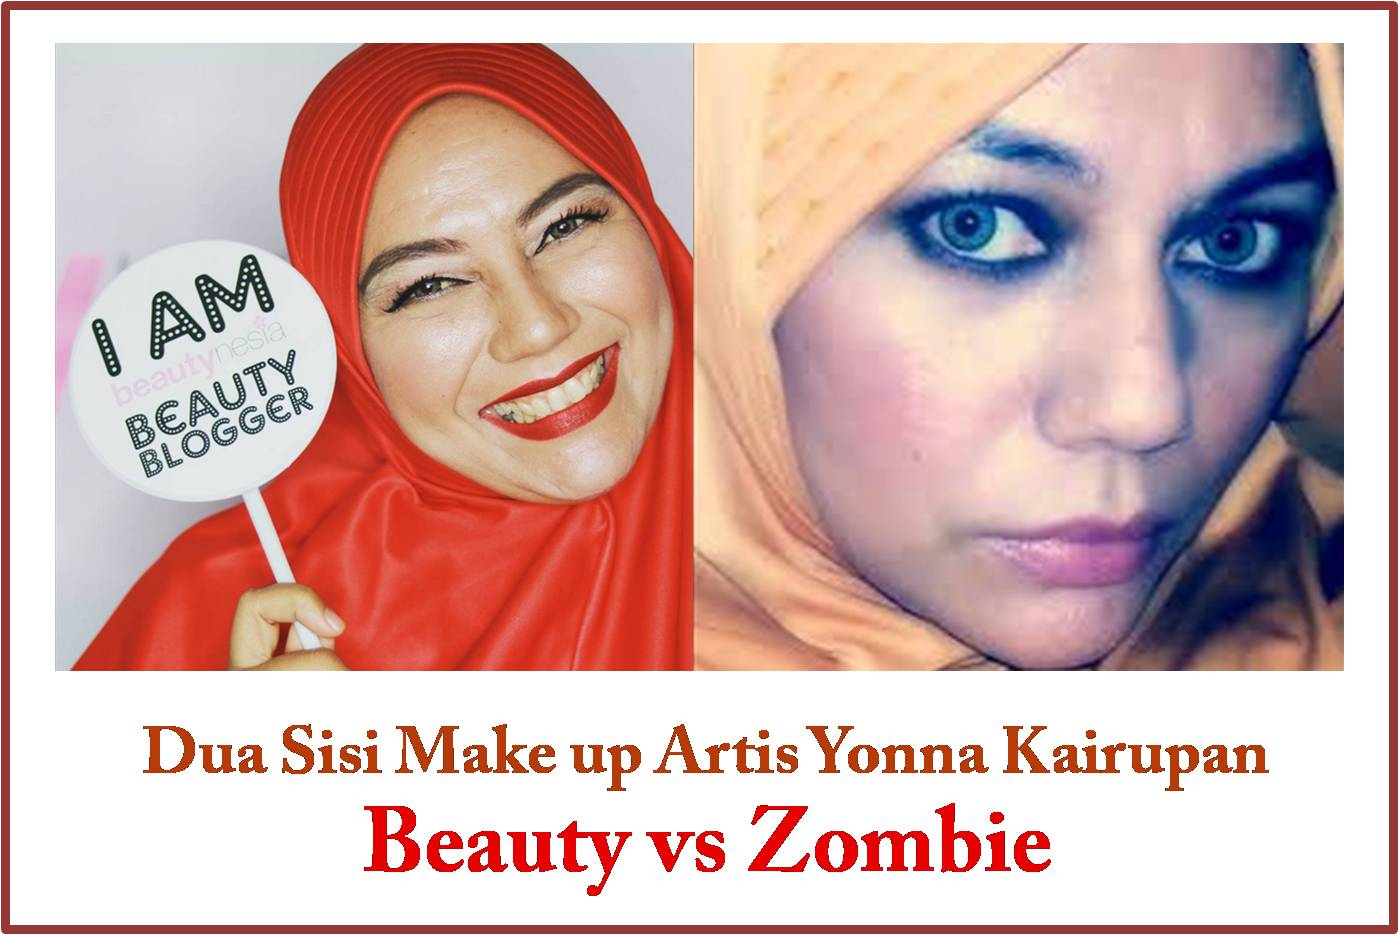 Make Up Artist Yonna Kairupan